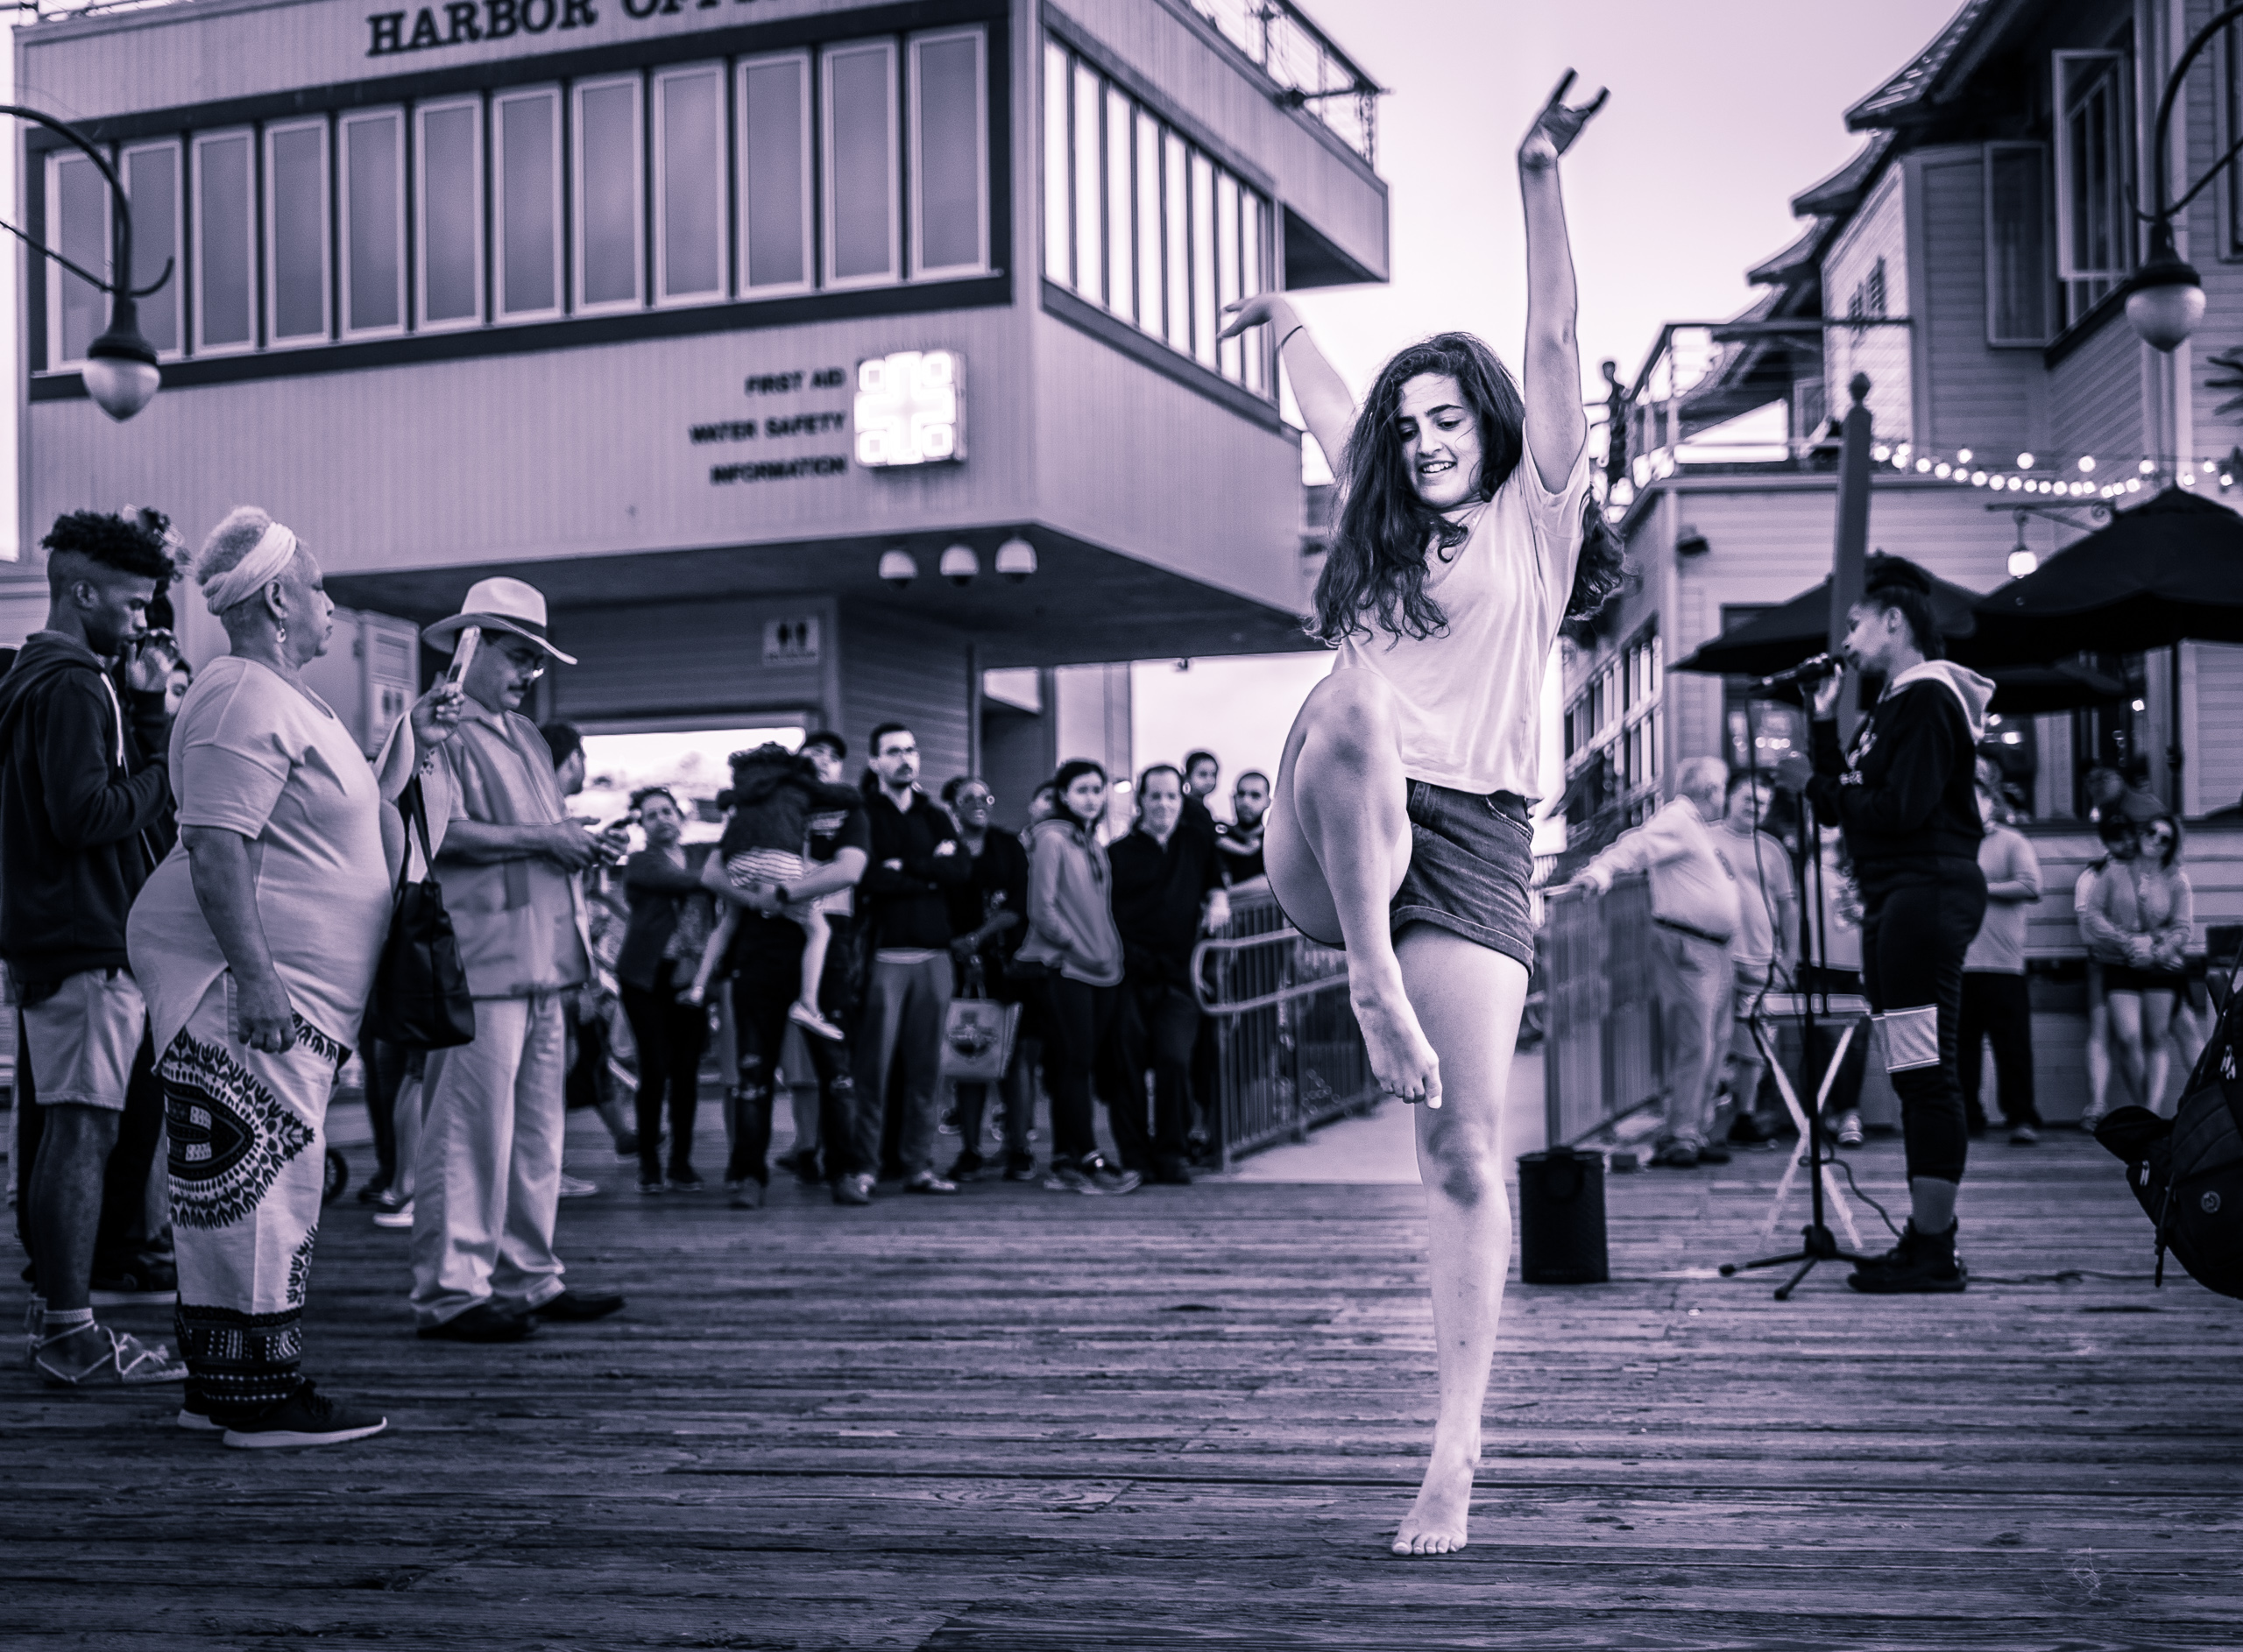 a young woman in denim shorts and bare feet gives an inspired dance performance near the end of the Santa Monica Pier